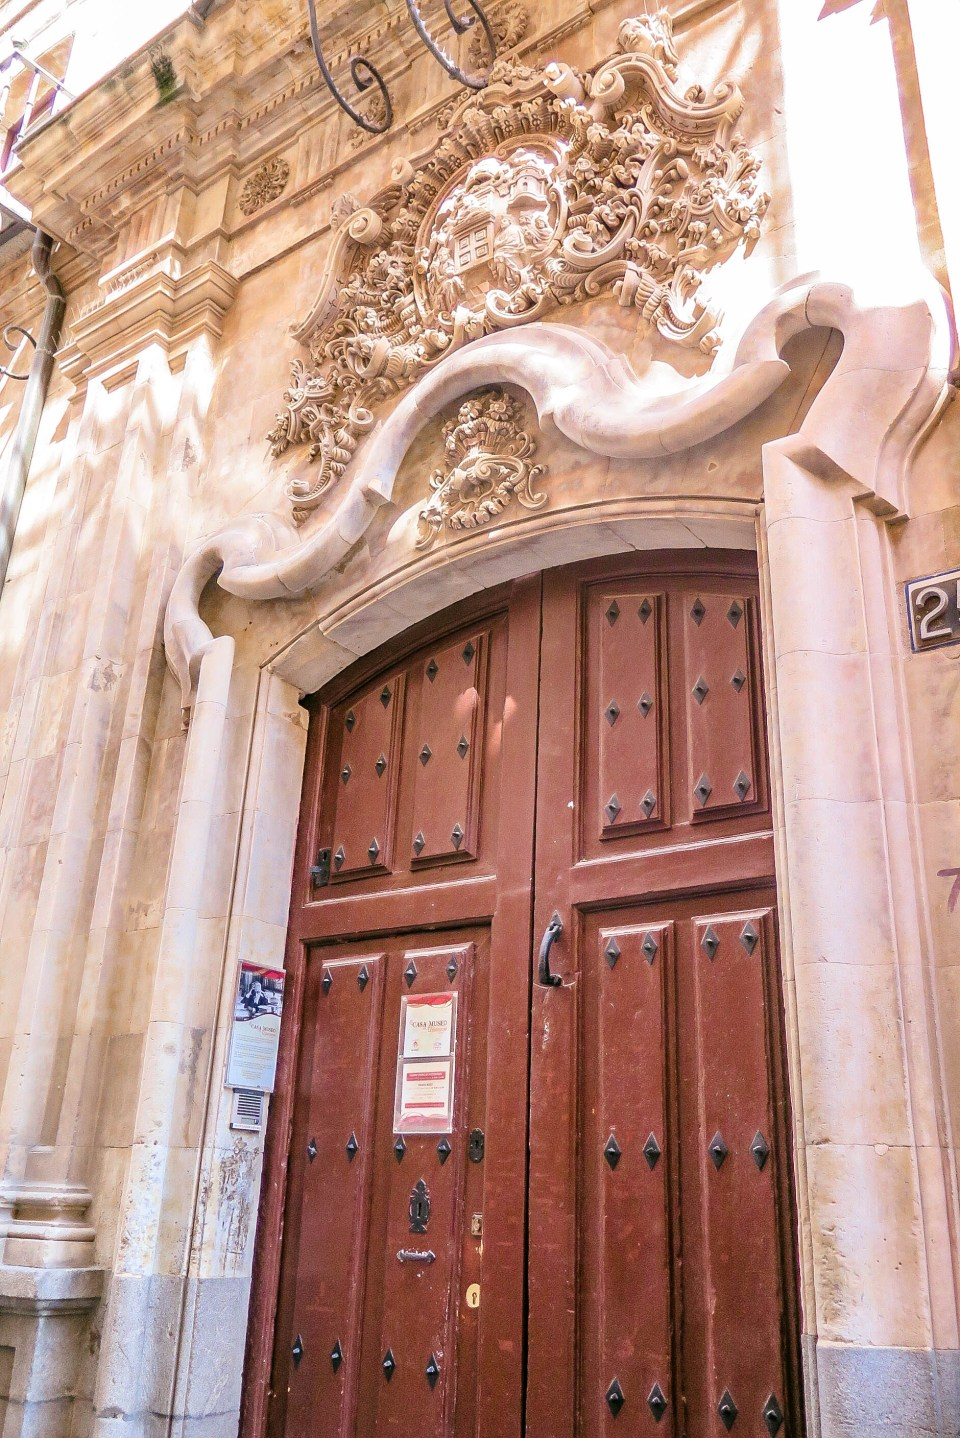 Right next to the University's door, you'll find Miguel de Unamuno's office, the University's first President and one of pains most beloved writer, essayist, poet and playwright.